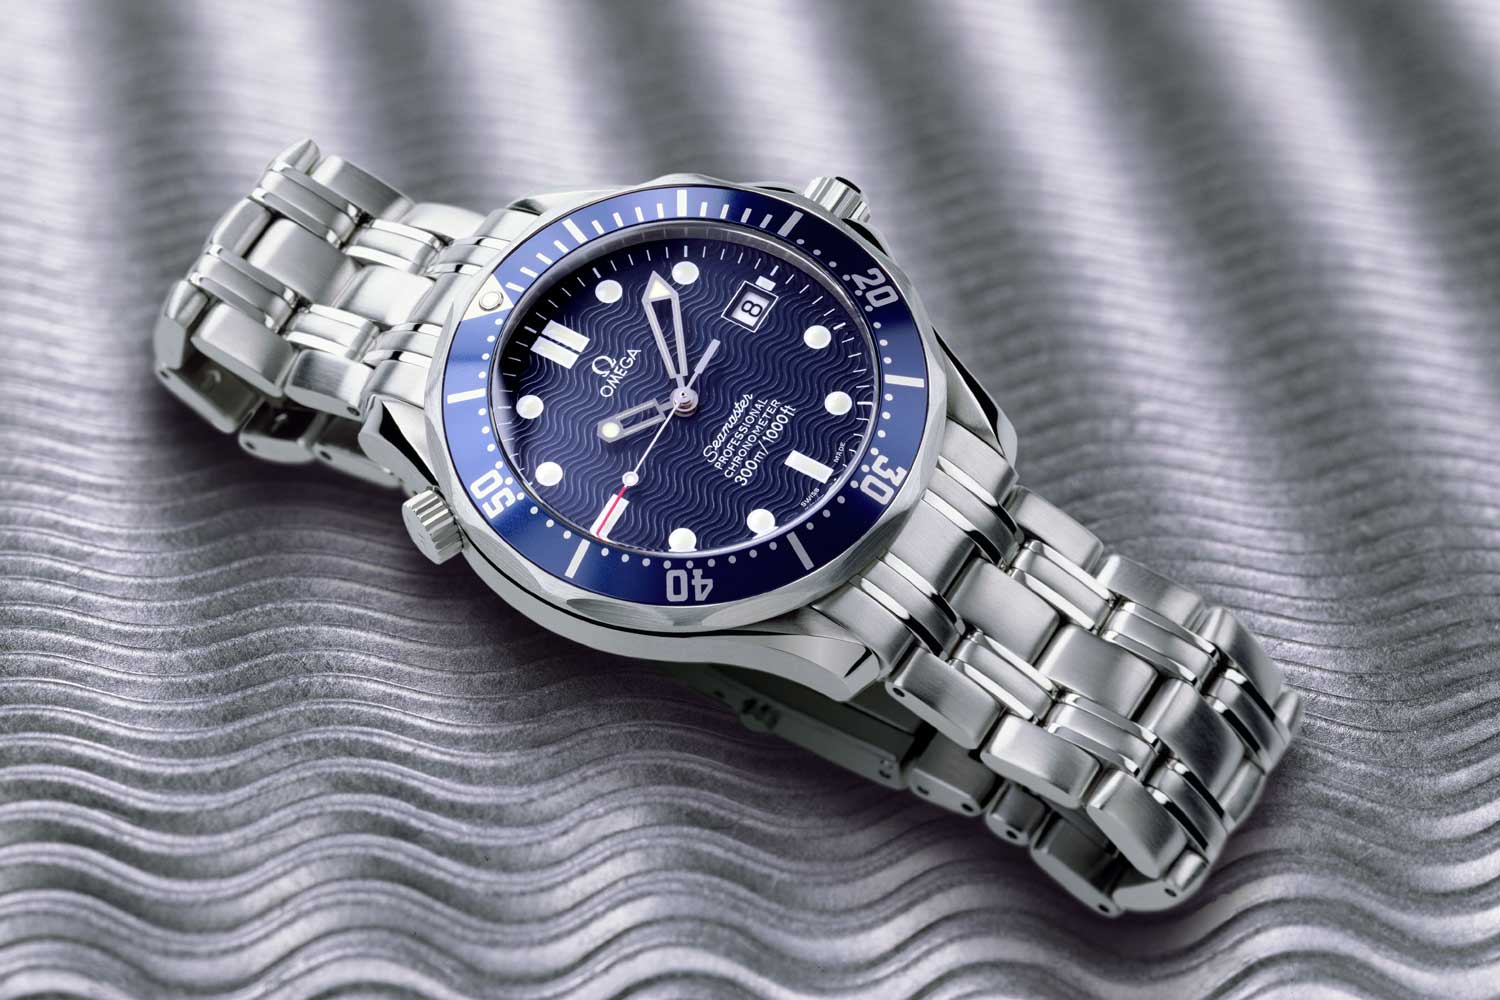 The version of the Seamaster Diver 300M that Bond wore in Tomorrow Never Dies (1997), The World is Not Enough (1999) and Die Another Day (2002)